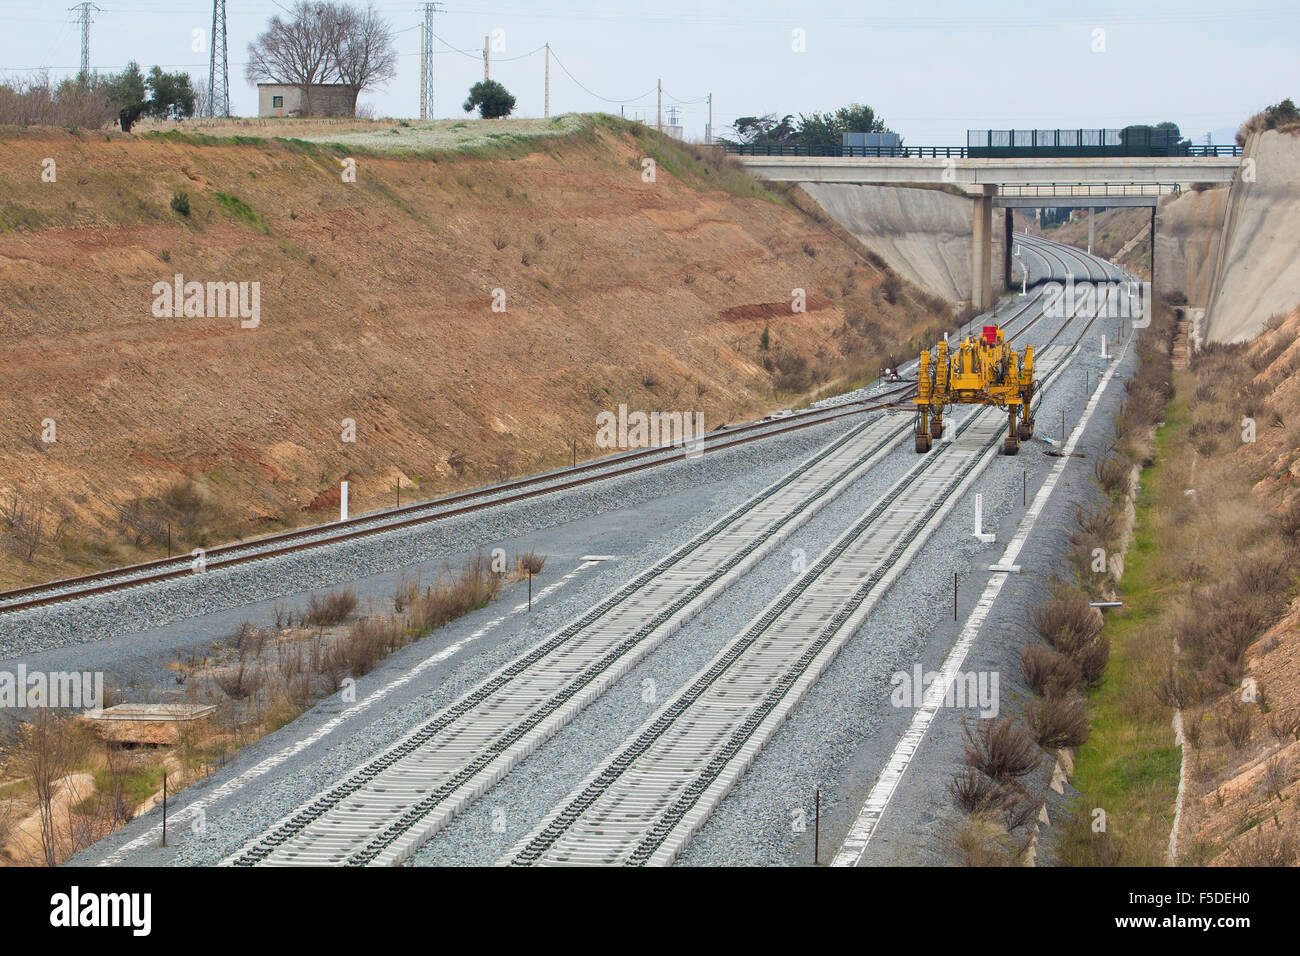 Railway on construction, gravel and railway sleepers - Stock Image